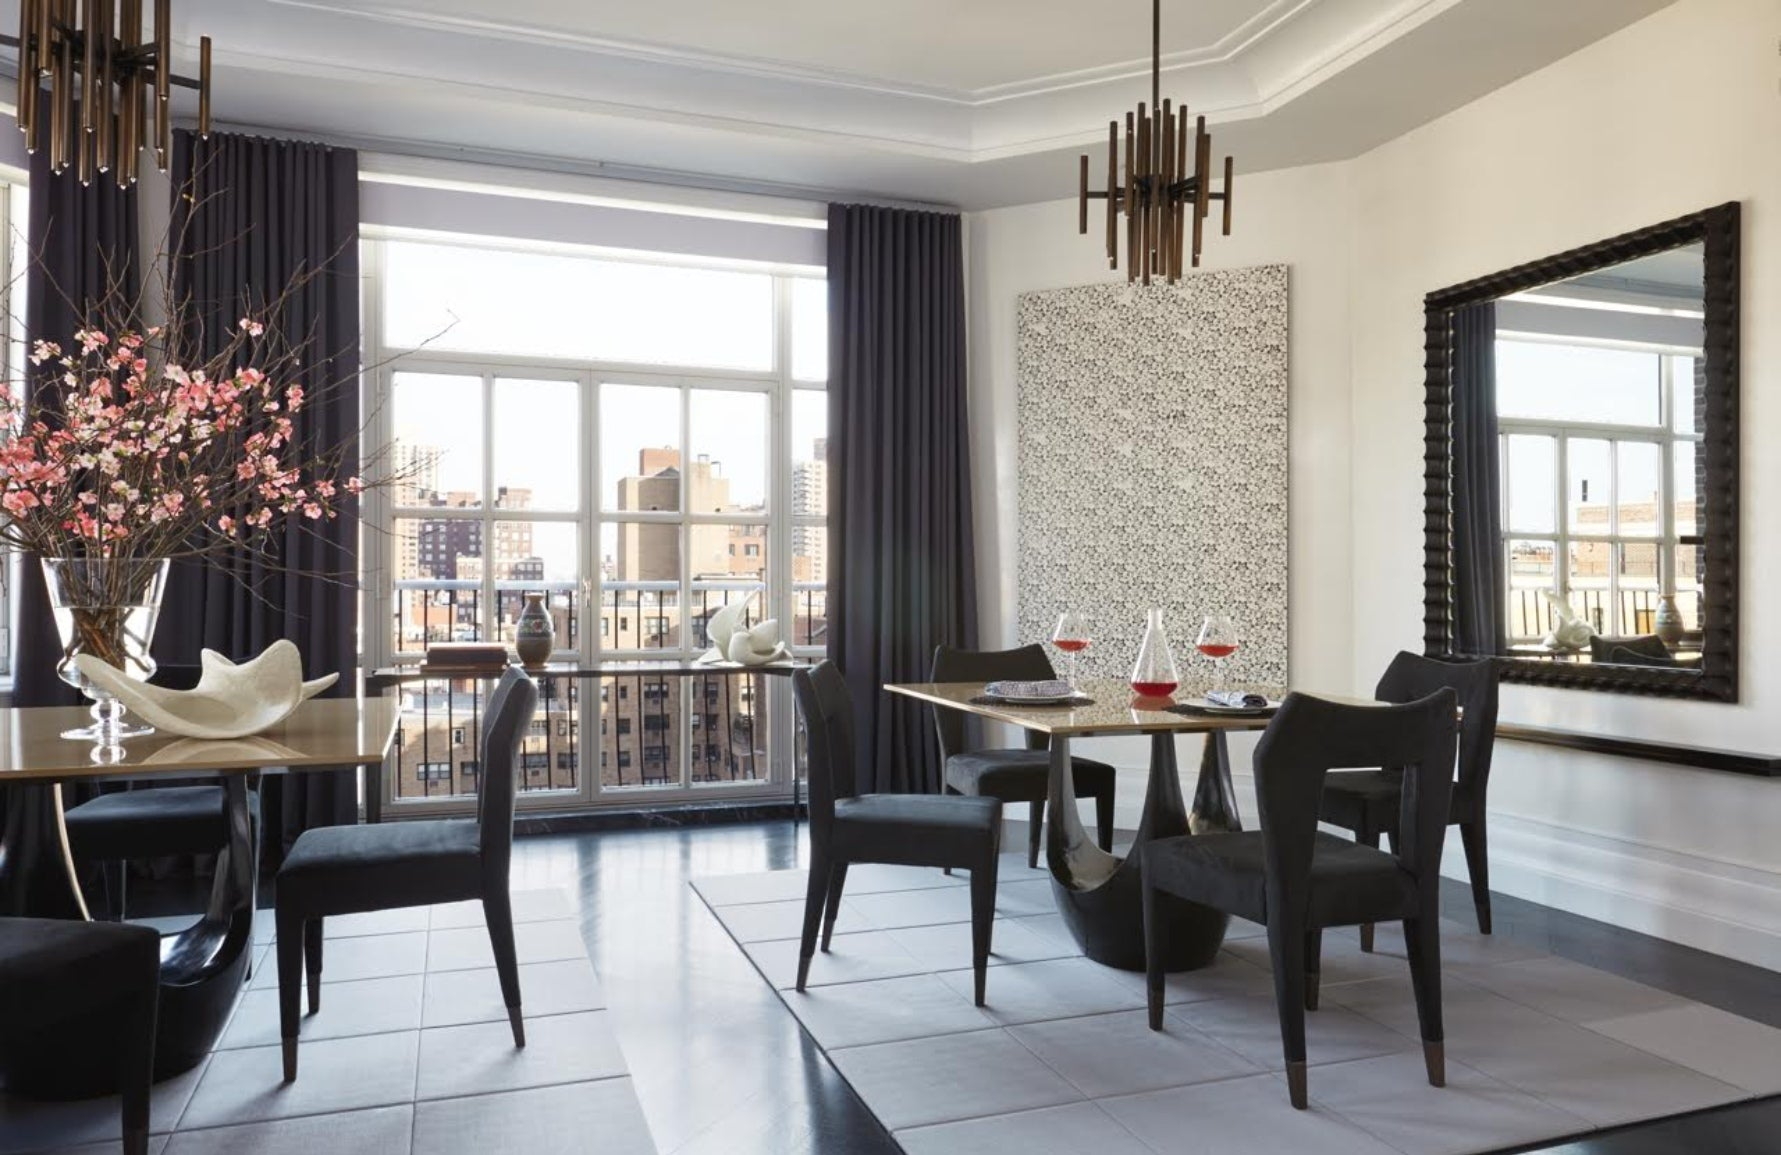 Monochrome Dining Room – Dining Room Colour Palettes - Dining Room Colour Schemes & Colour Combination ideas – Read in the LuxDeco.com Style Guide